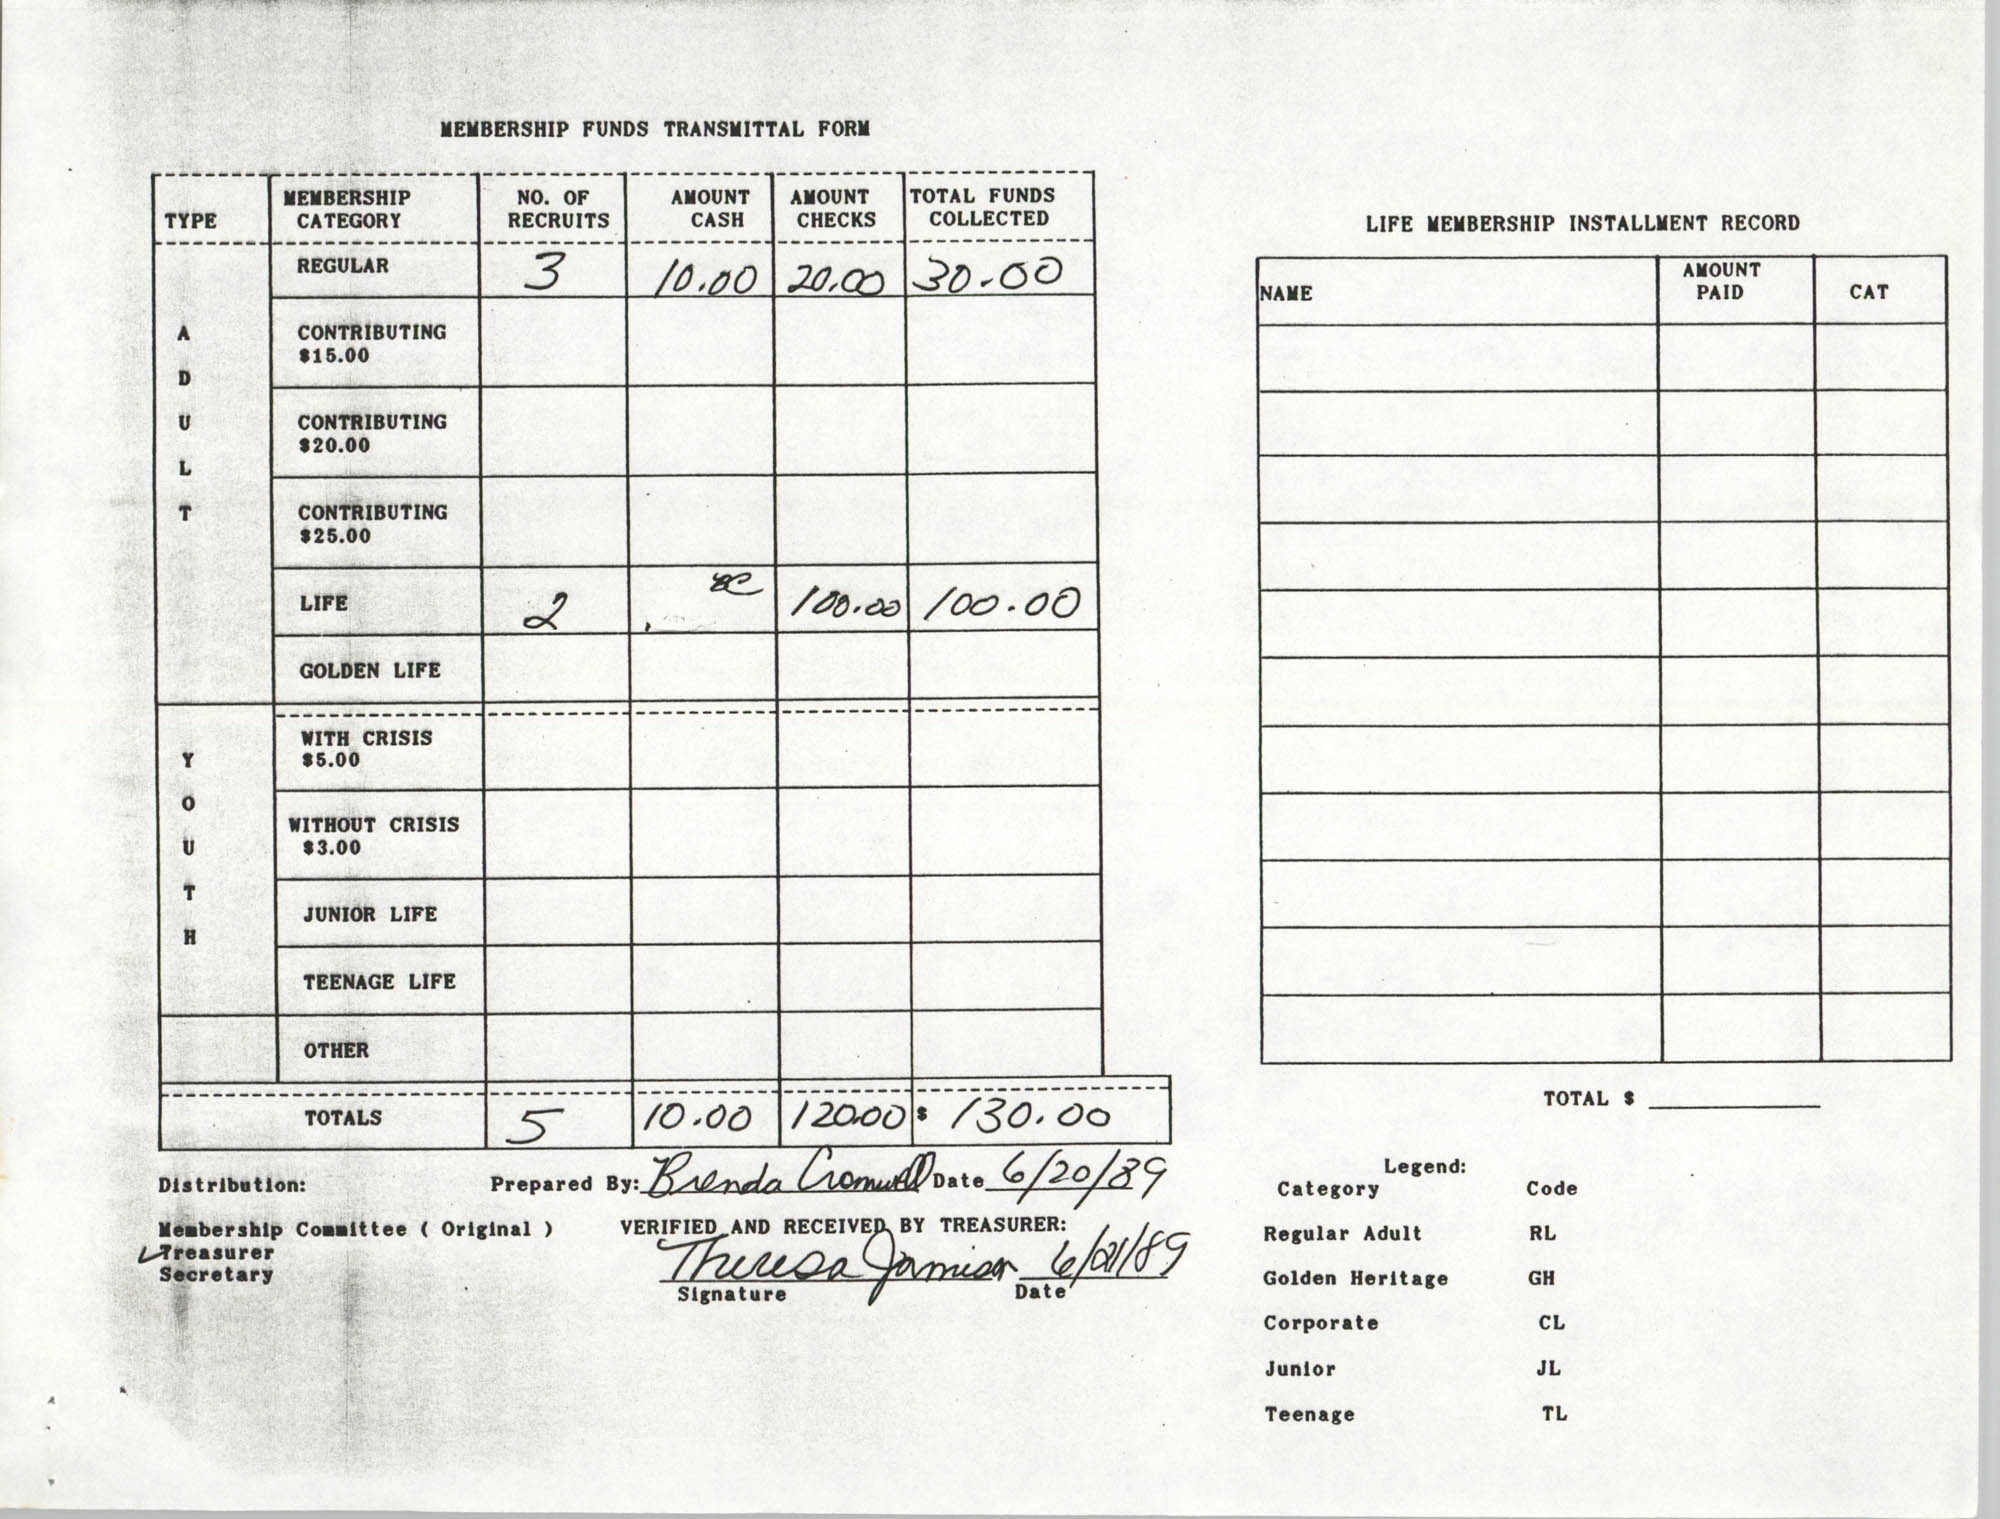 Charleston Branch of the NAACP Funds Transmittal Forms, June 1989, Page 4